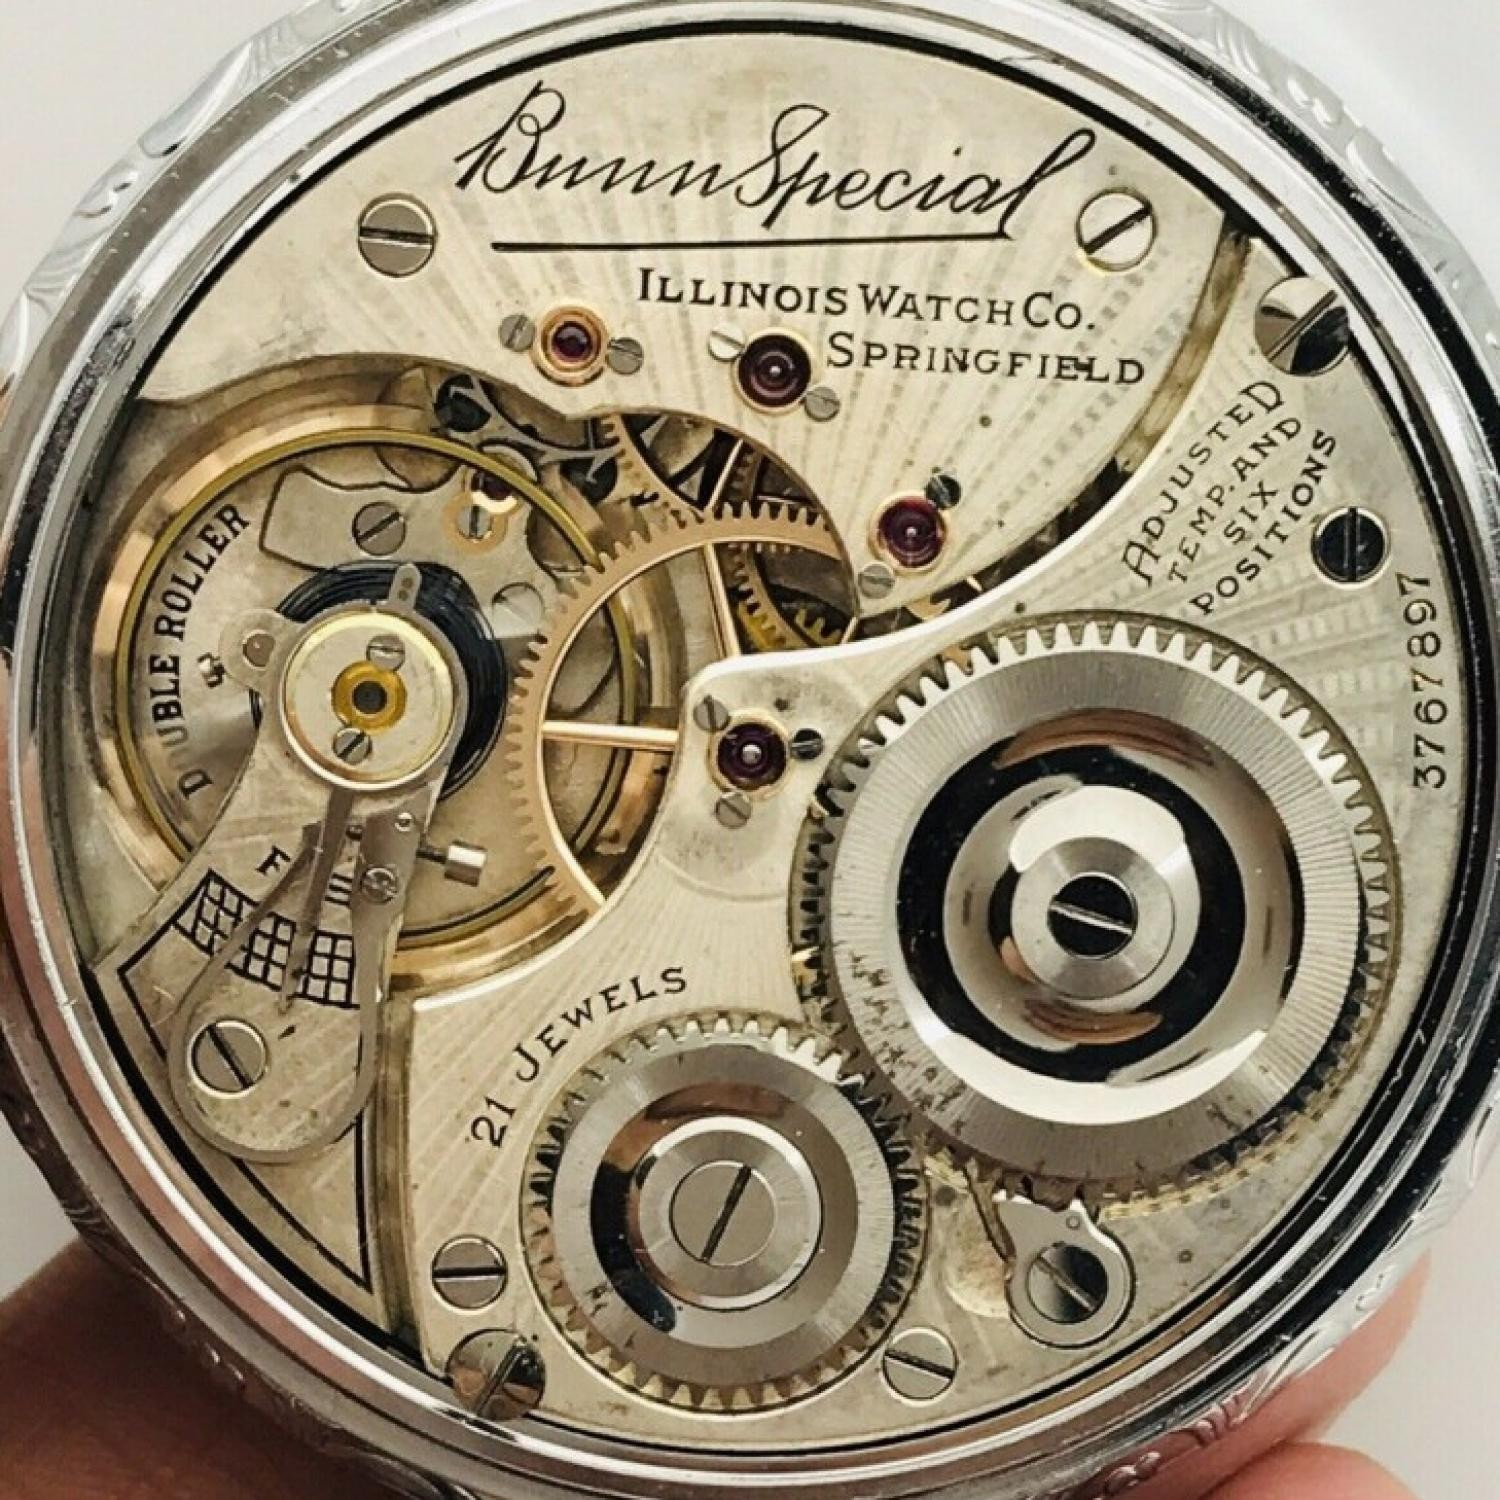 Image of Illinois Bunn Special #3767897 Movement